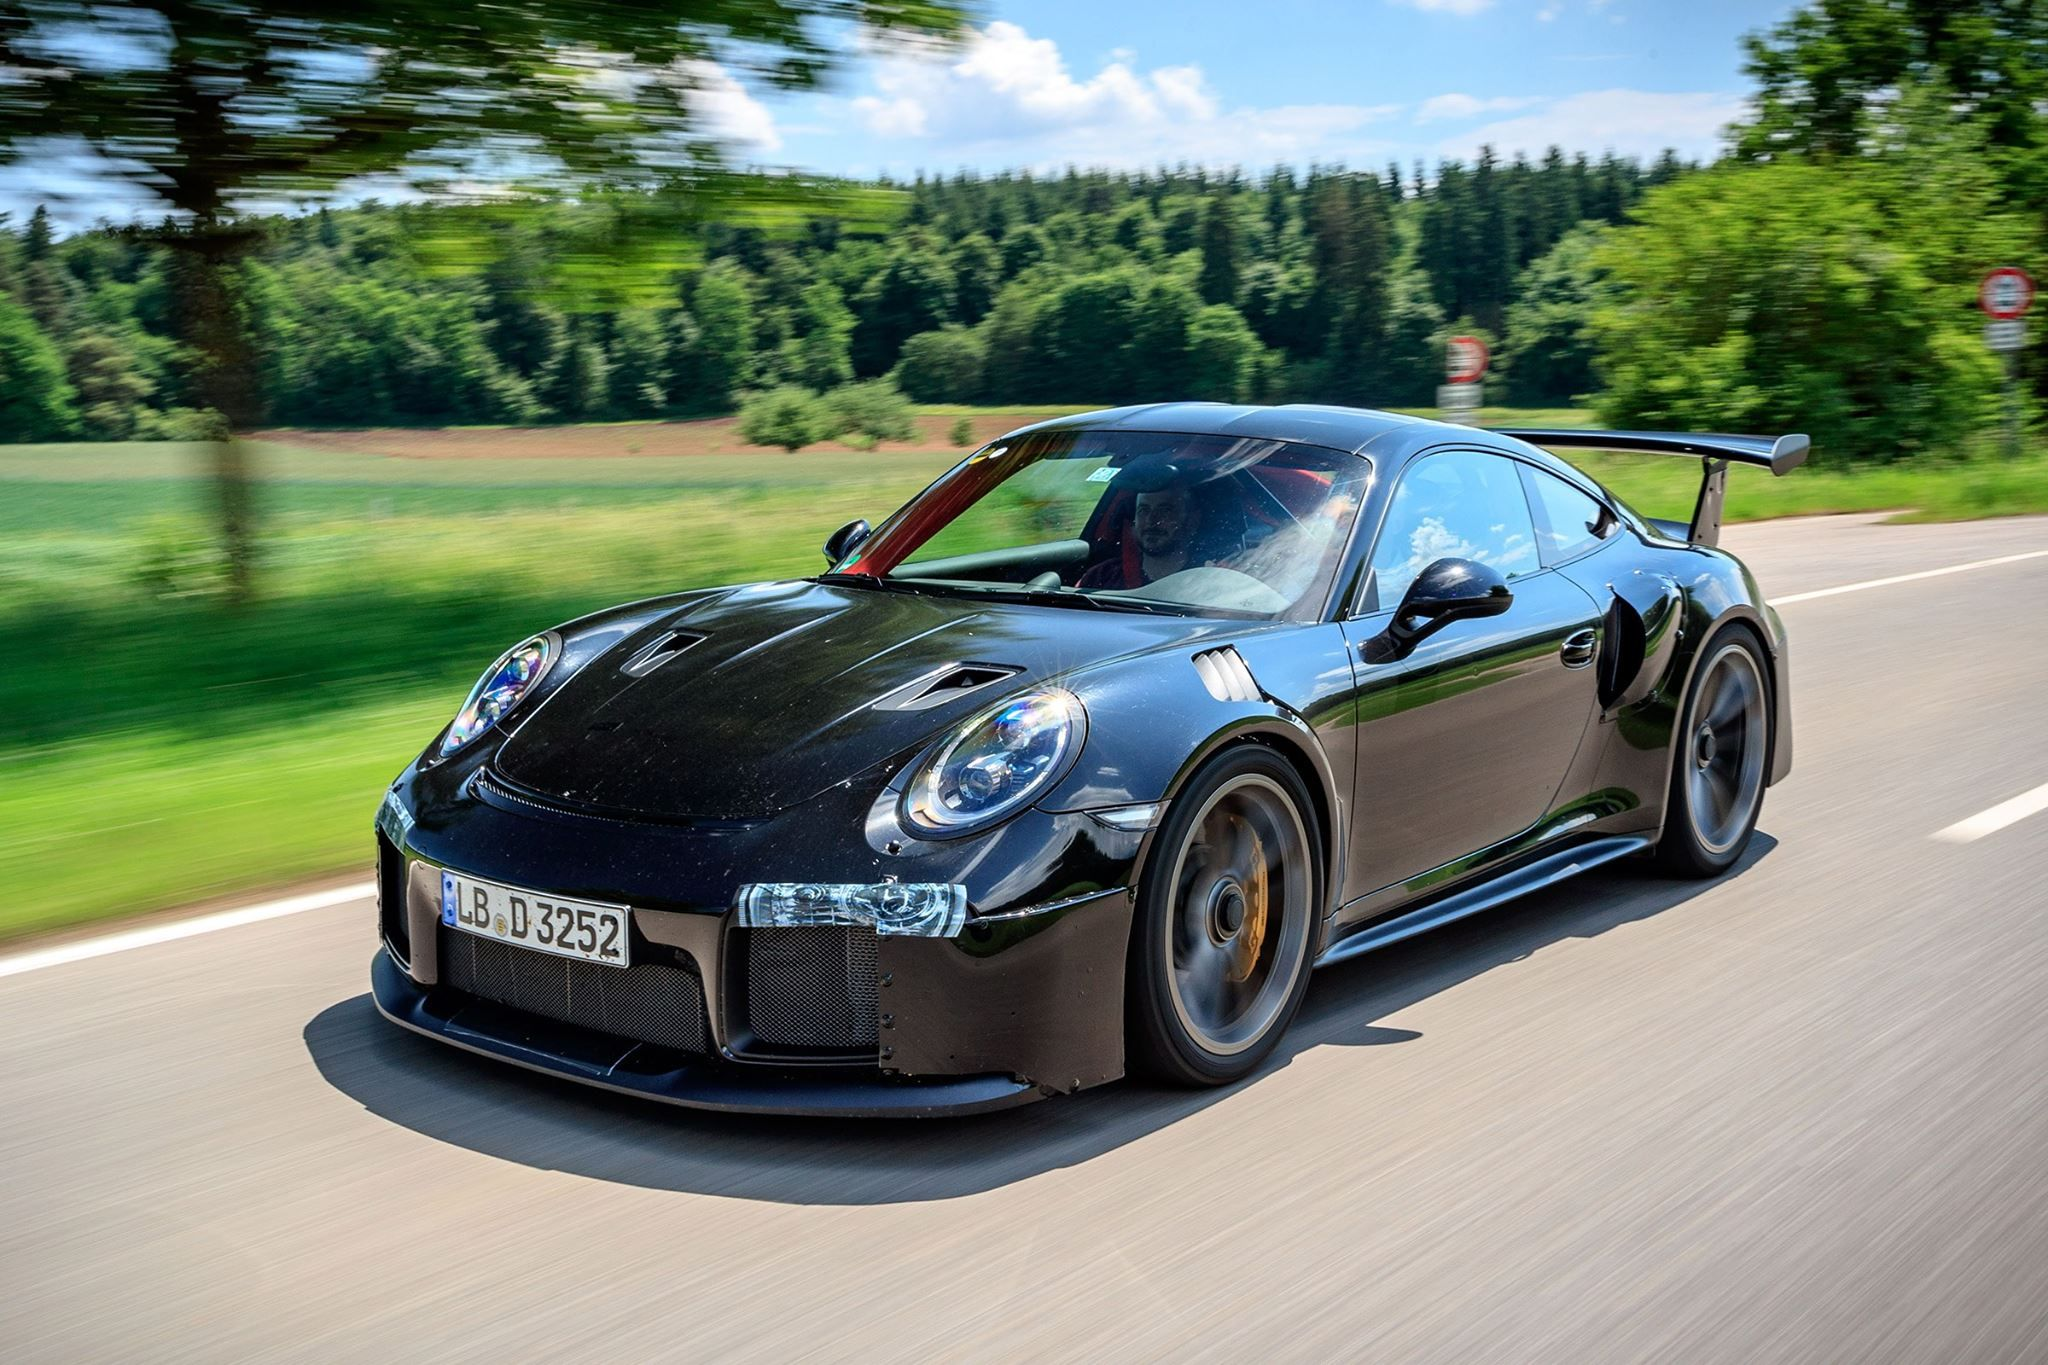 67a77851f6f0f98dbcc94c2165b5d19b Breathtaking How Many Porsche 911 Gt2 Were Made Cars Trend